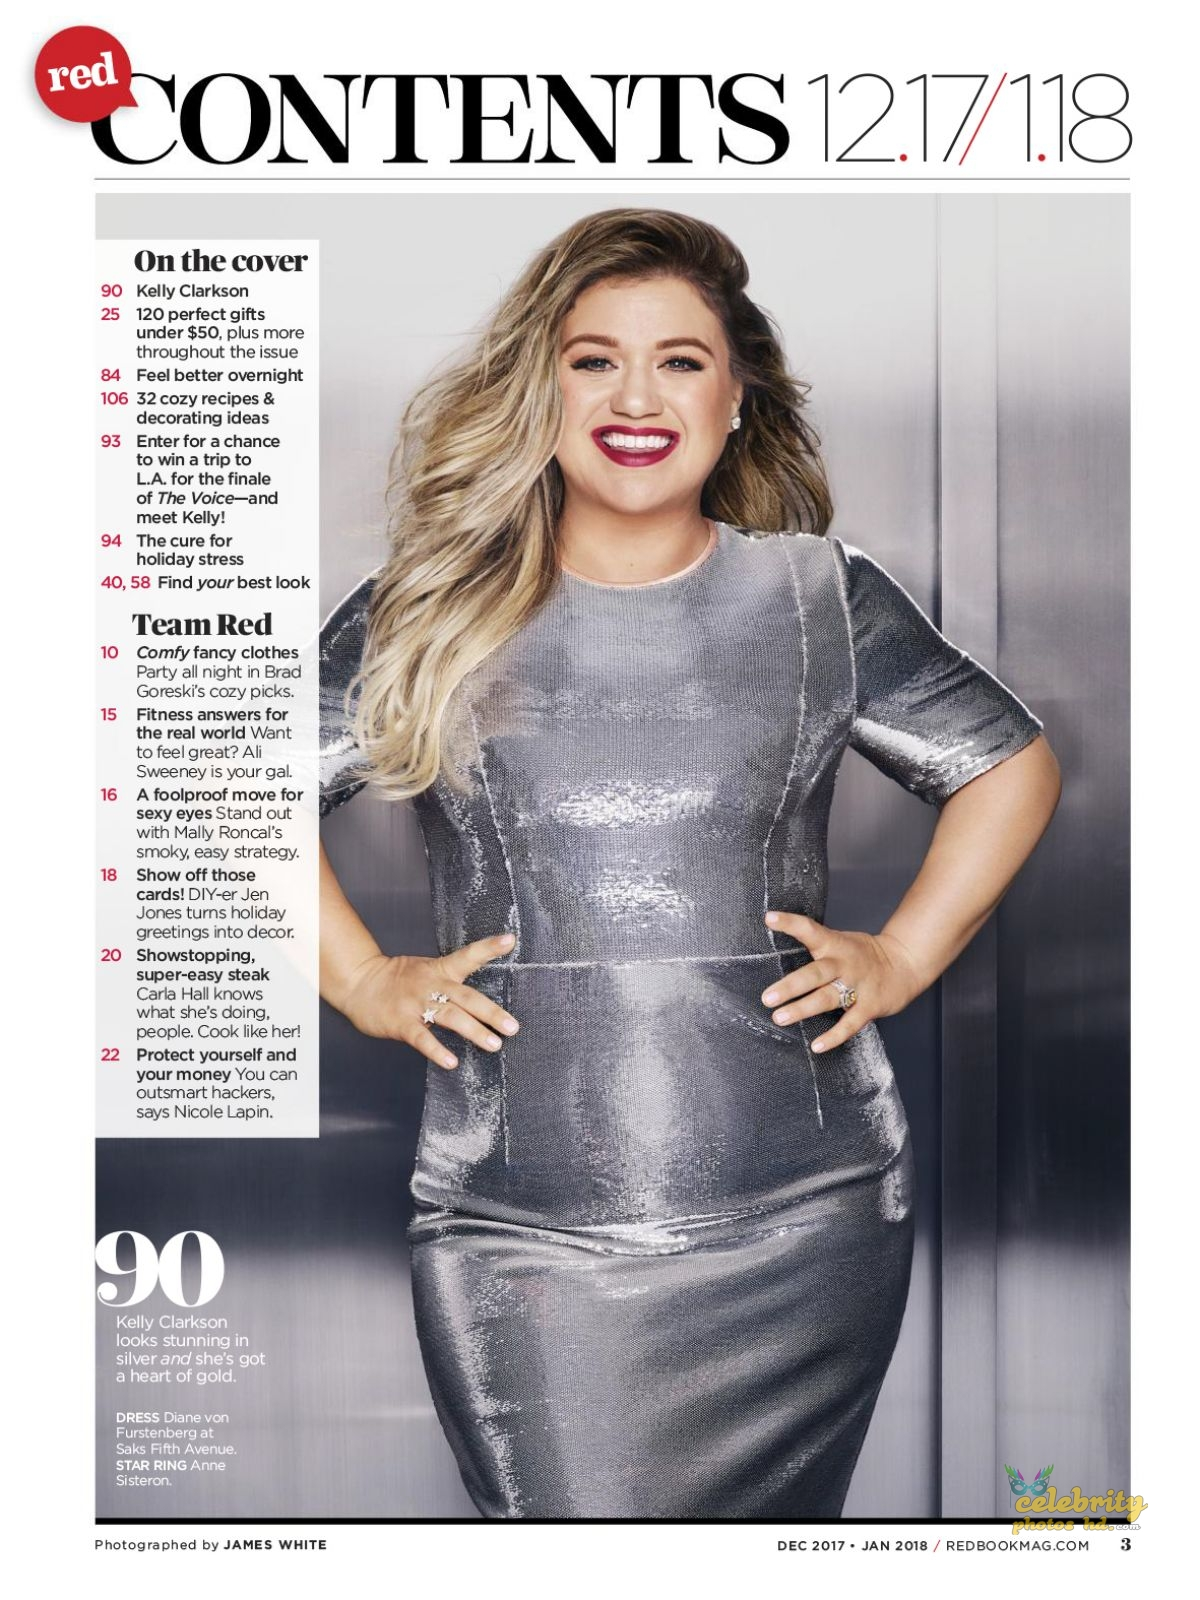 KELLY CLARKSON in Redbook Magazine Photoshoot (1)